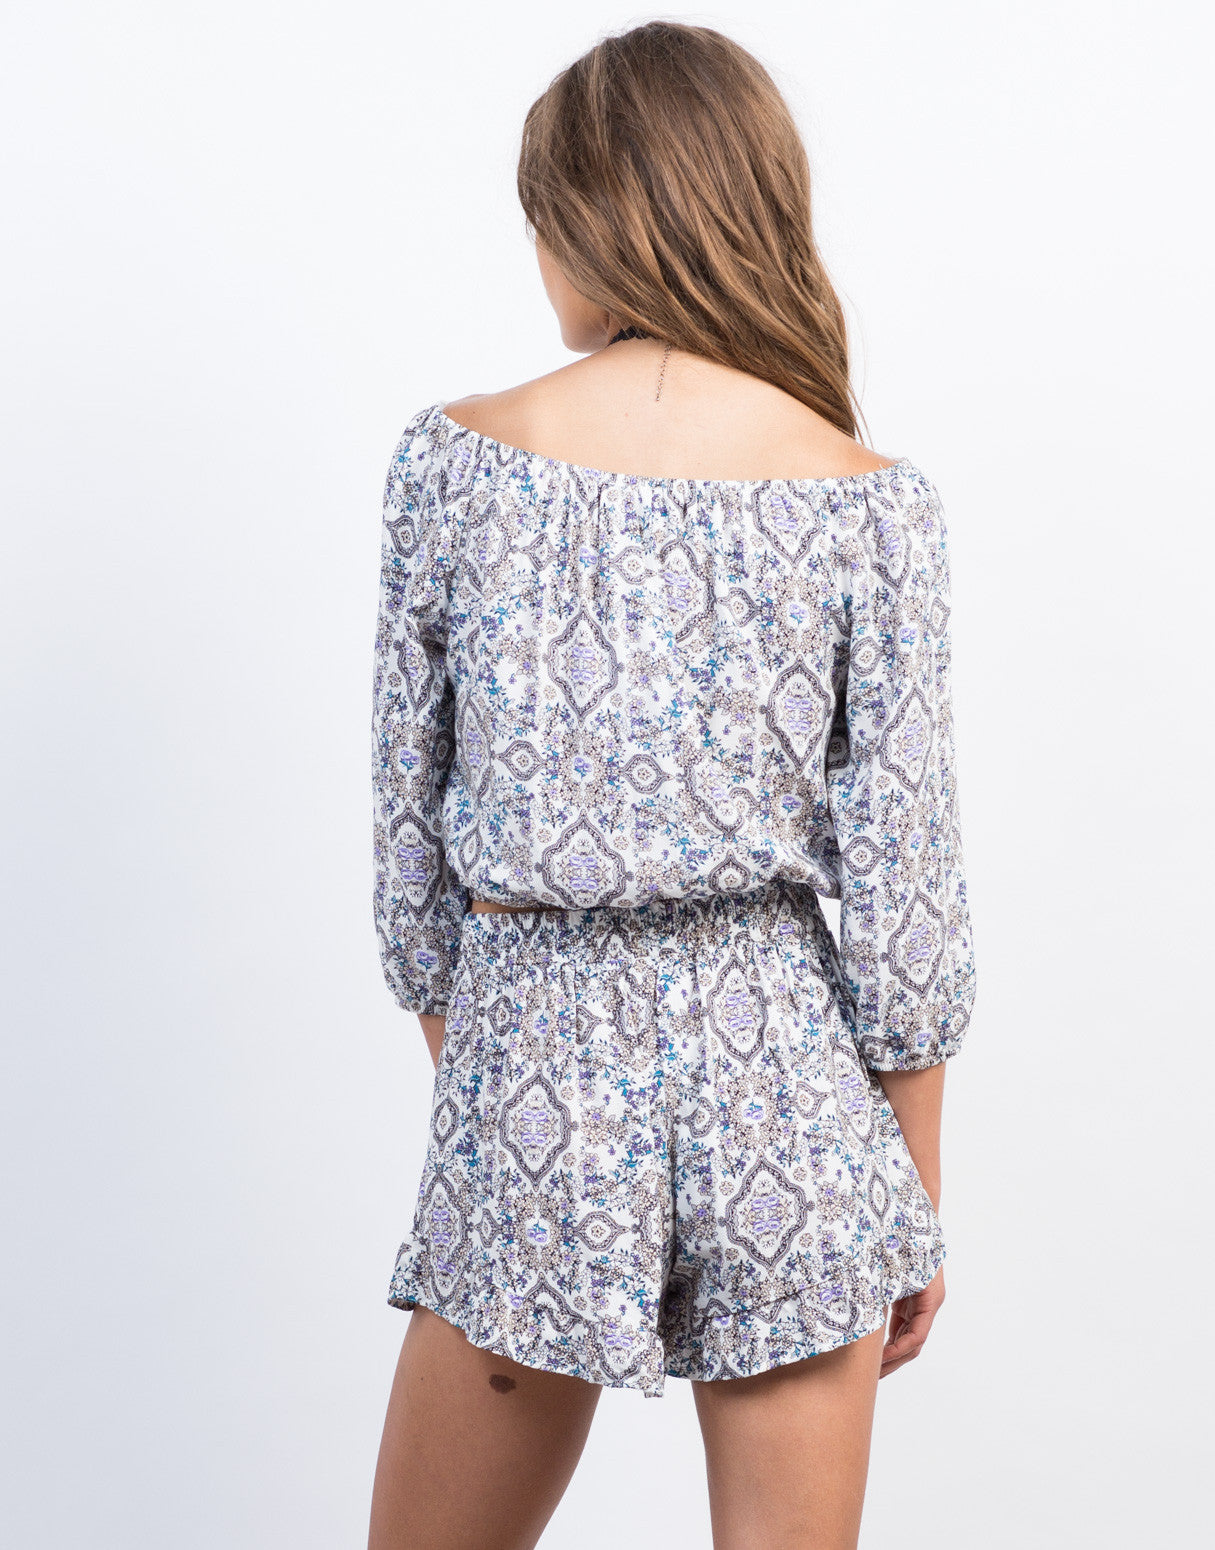 Back View of Floral Printed Off The Shoulder Top